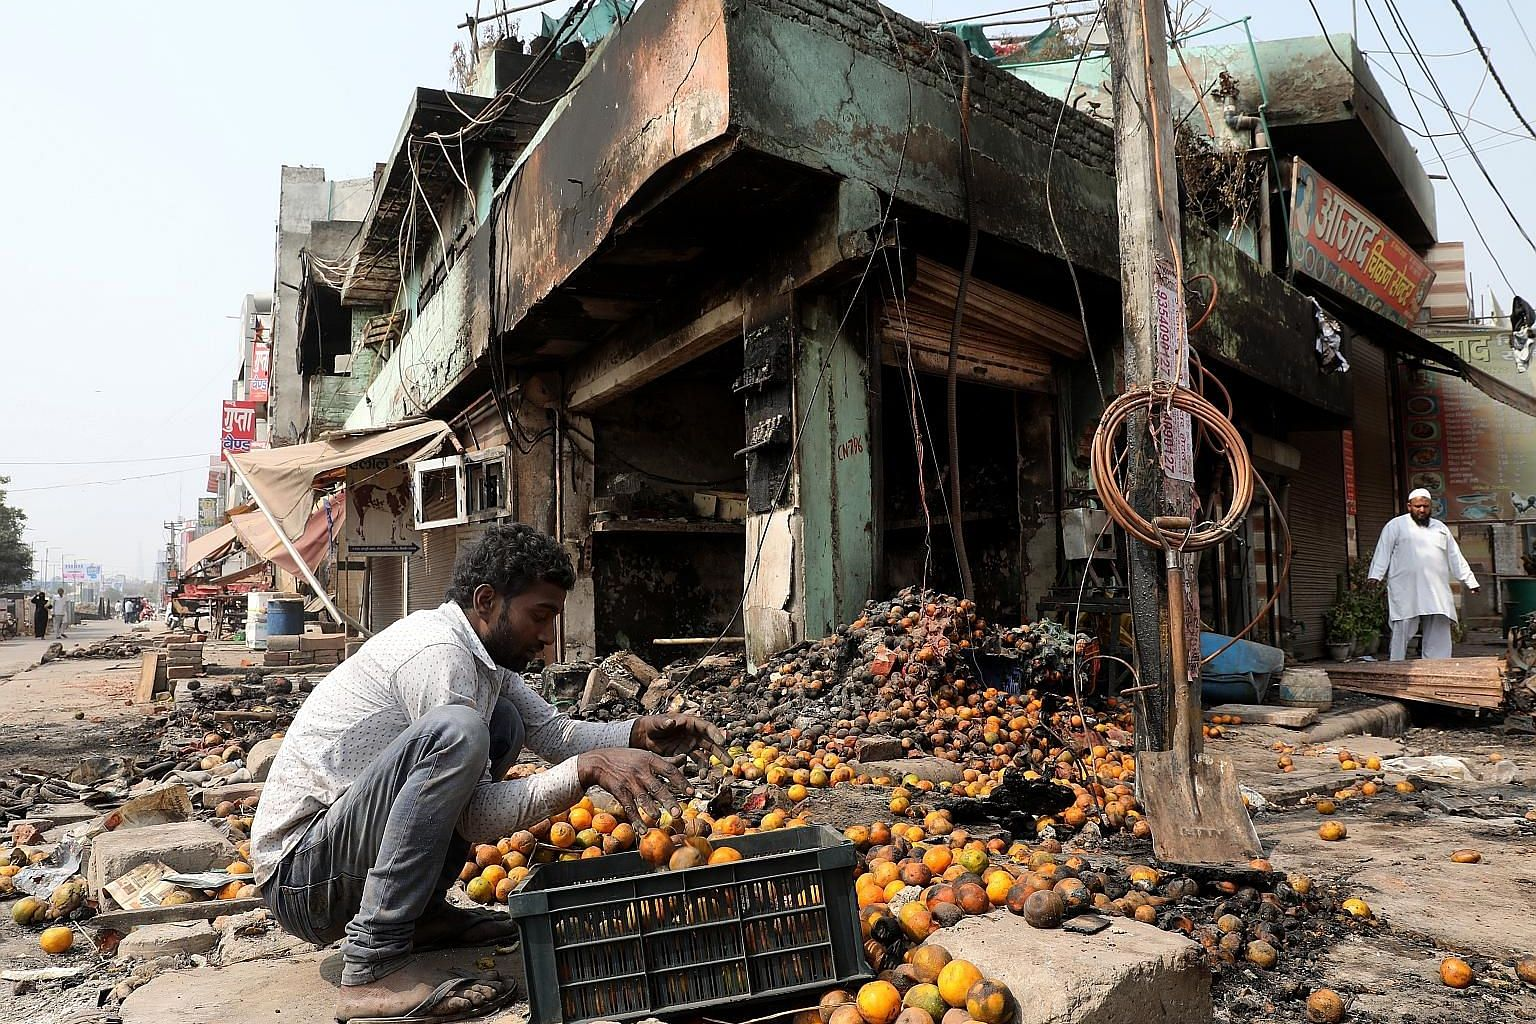 A family sitting amid the ruins of their home, which was set on fire by a mob during the riots. PHOTO: REUTERS A man collecting damaged fruits from a burnt-out area after the Hindu-Muslim riots in New Delhi last week. The riots broke out following cl